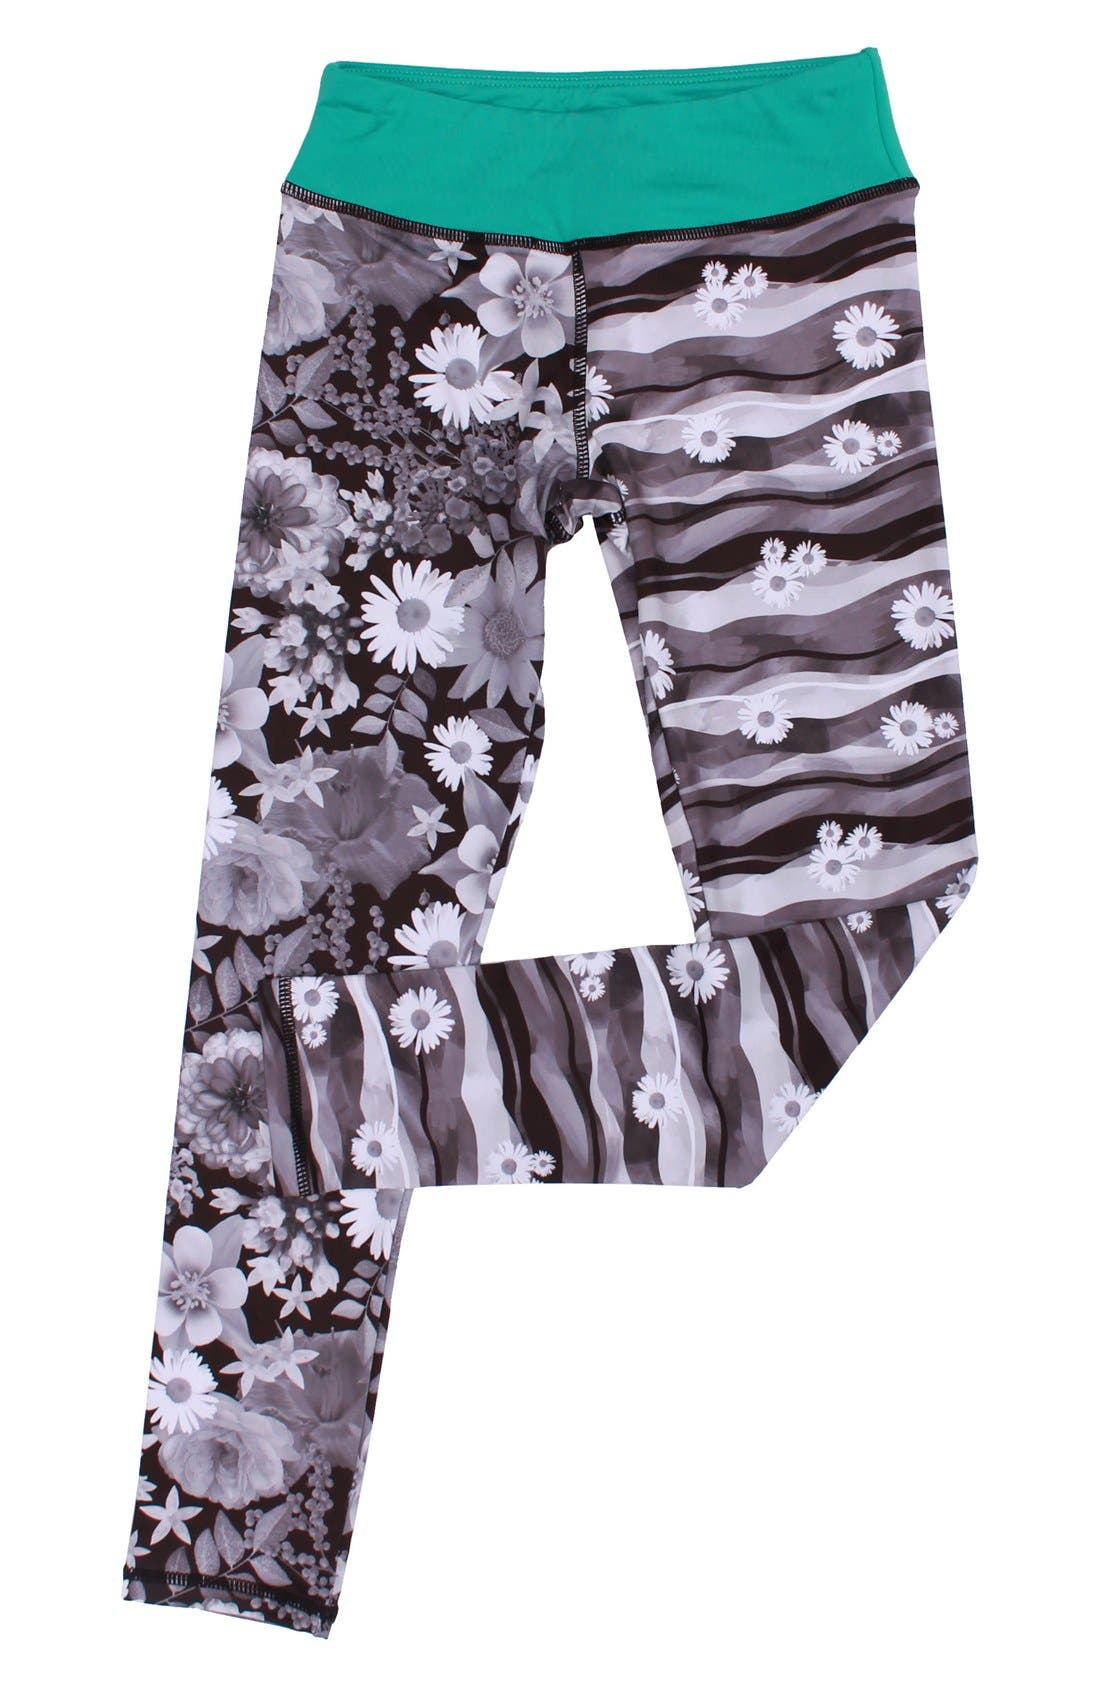 Alternate Image 1 Selected - CHOOZE Splits Mixed Print Leggings (Little Girls & Big Girls)